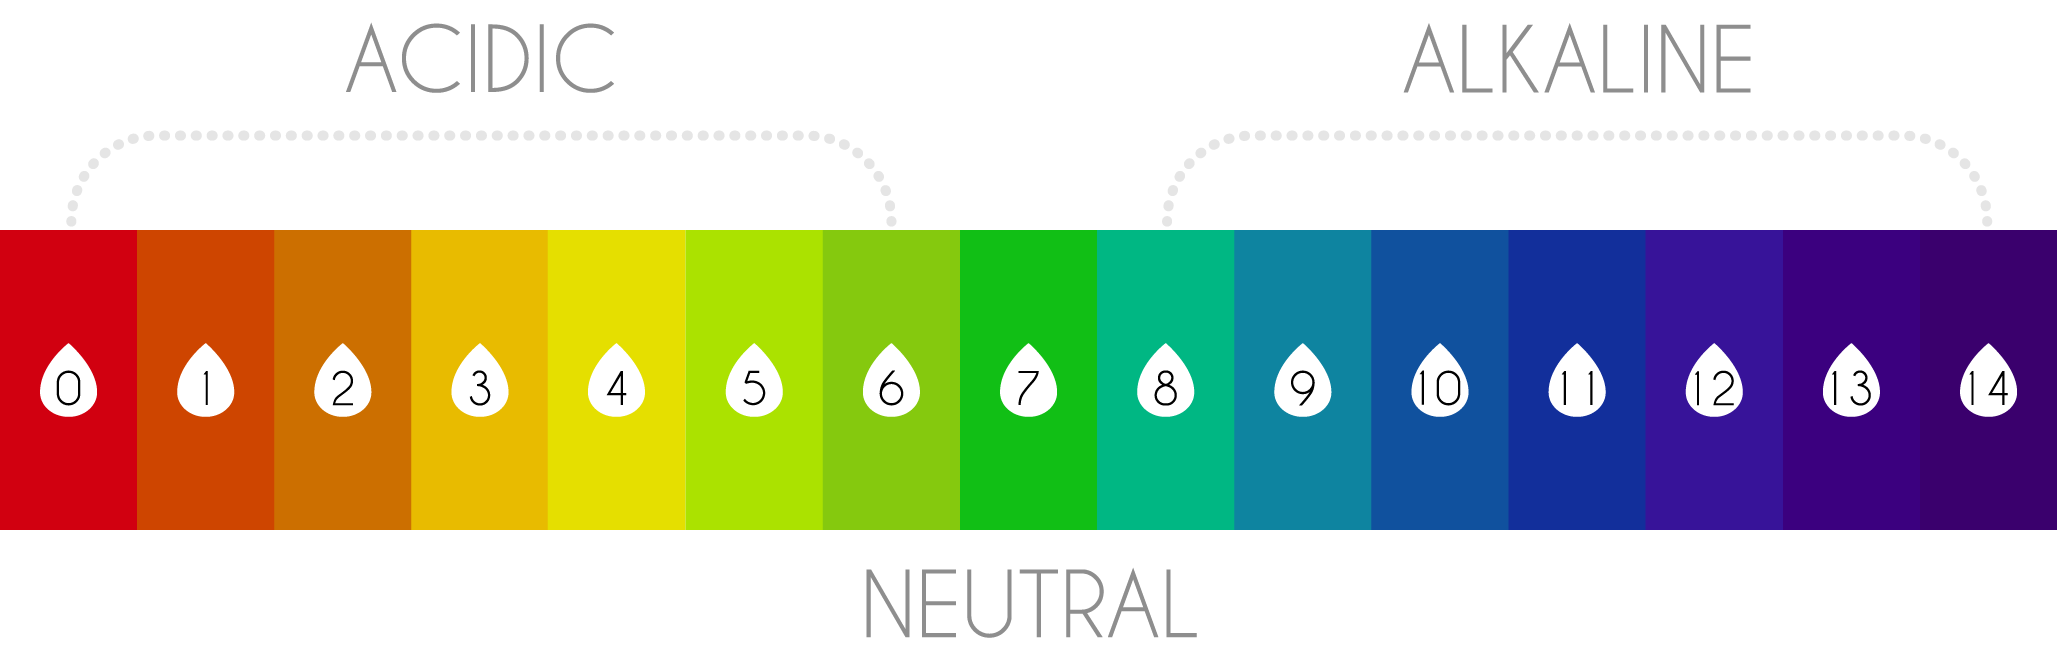 tap water ph neutrality and the acidity of gatorade Alkaline water vs gatorade for sports hydration  improves acid/base status drinking alkaline water helps the blood retain serum bicarbonates, which allows your .